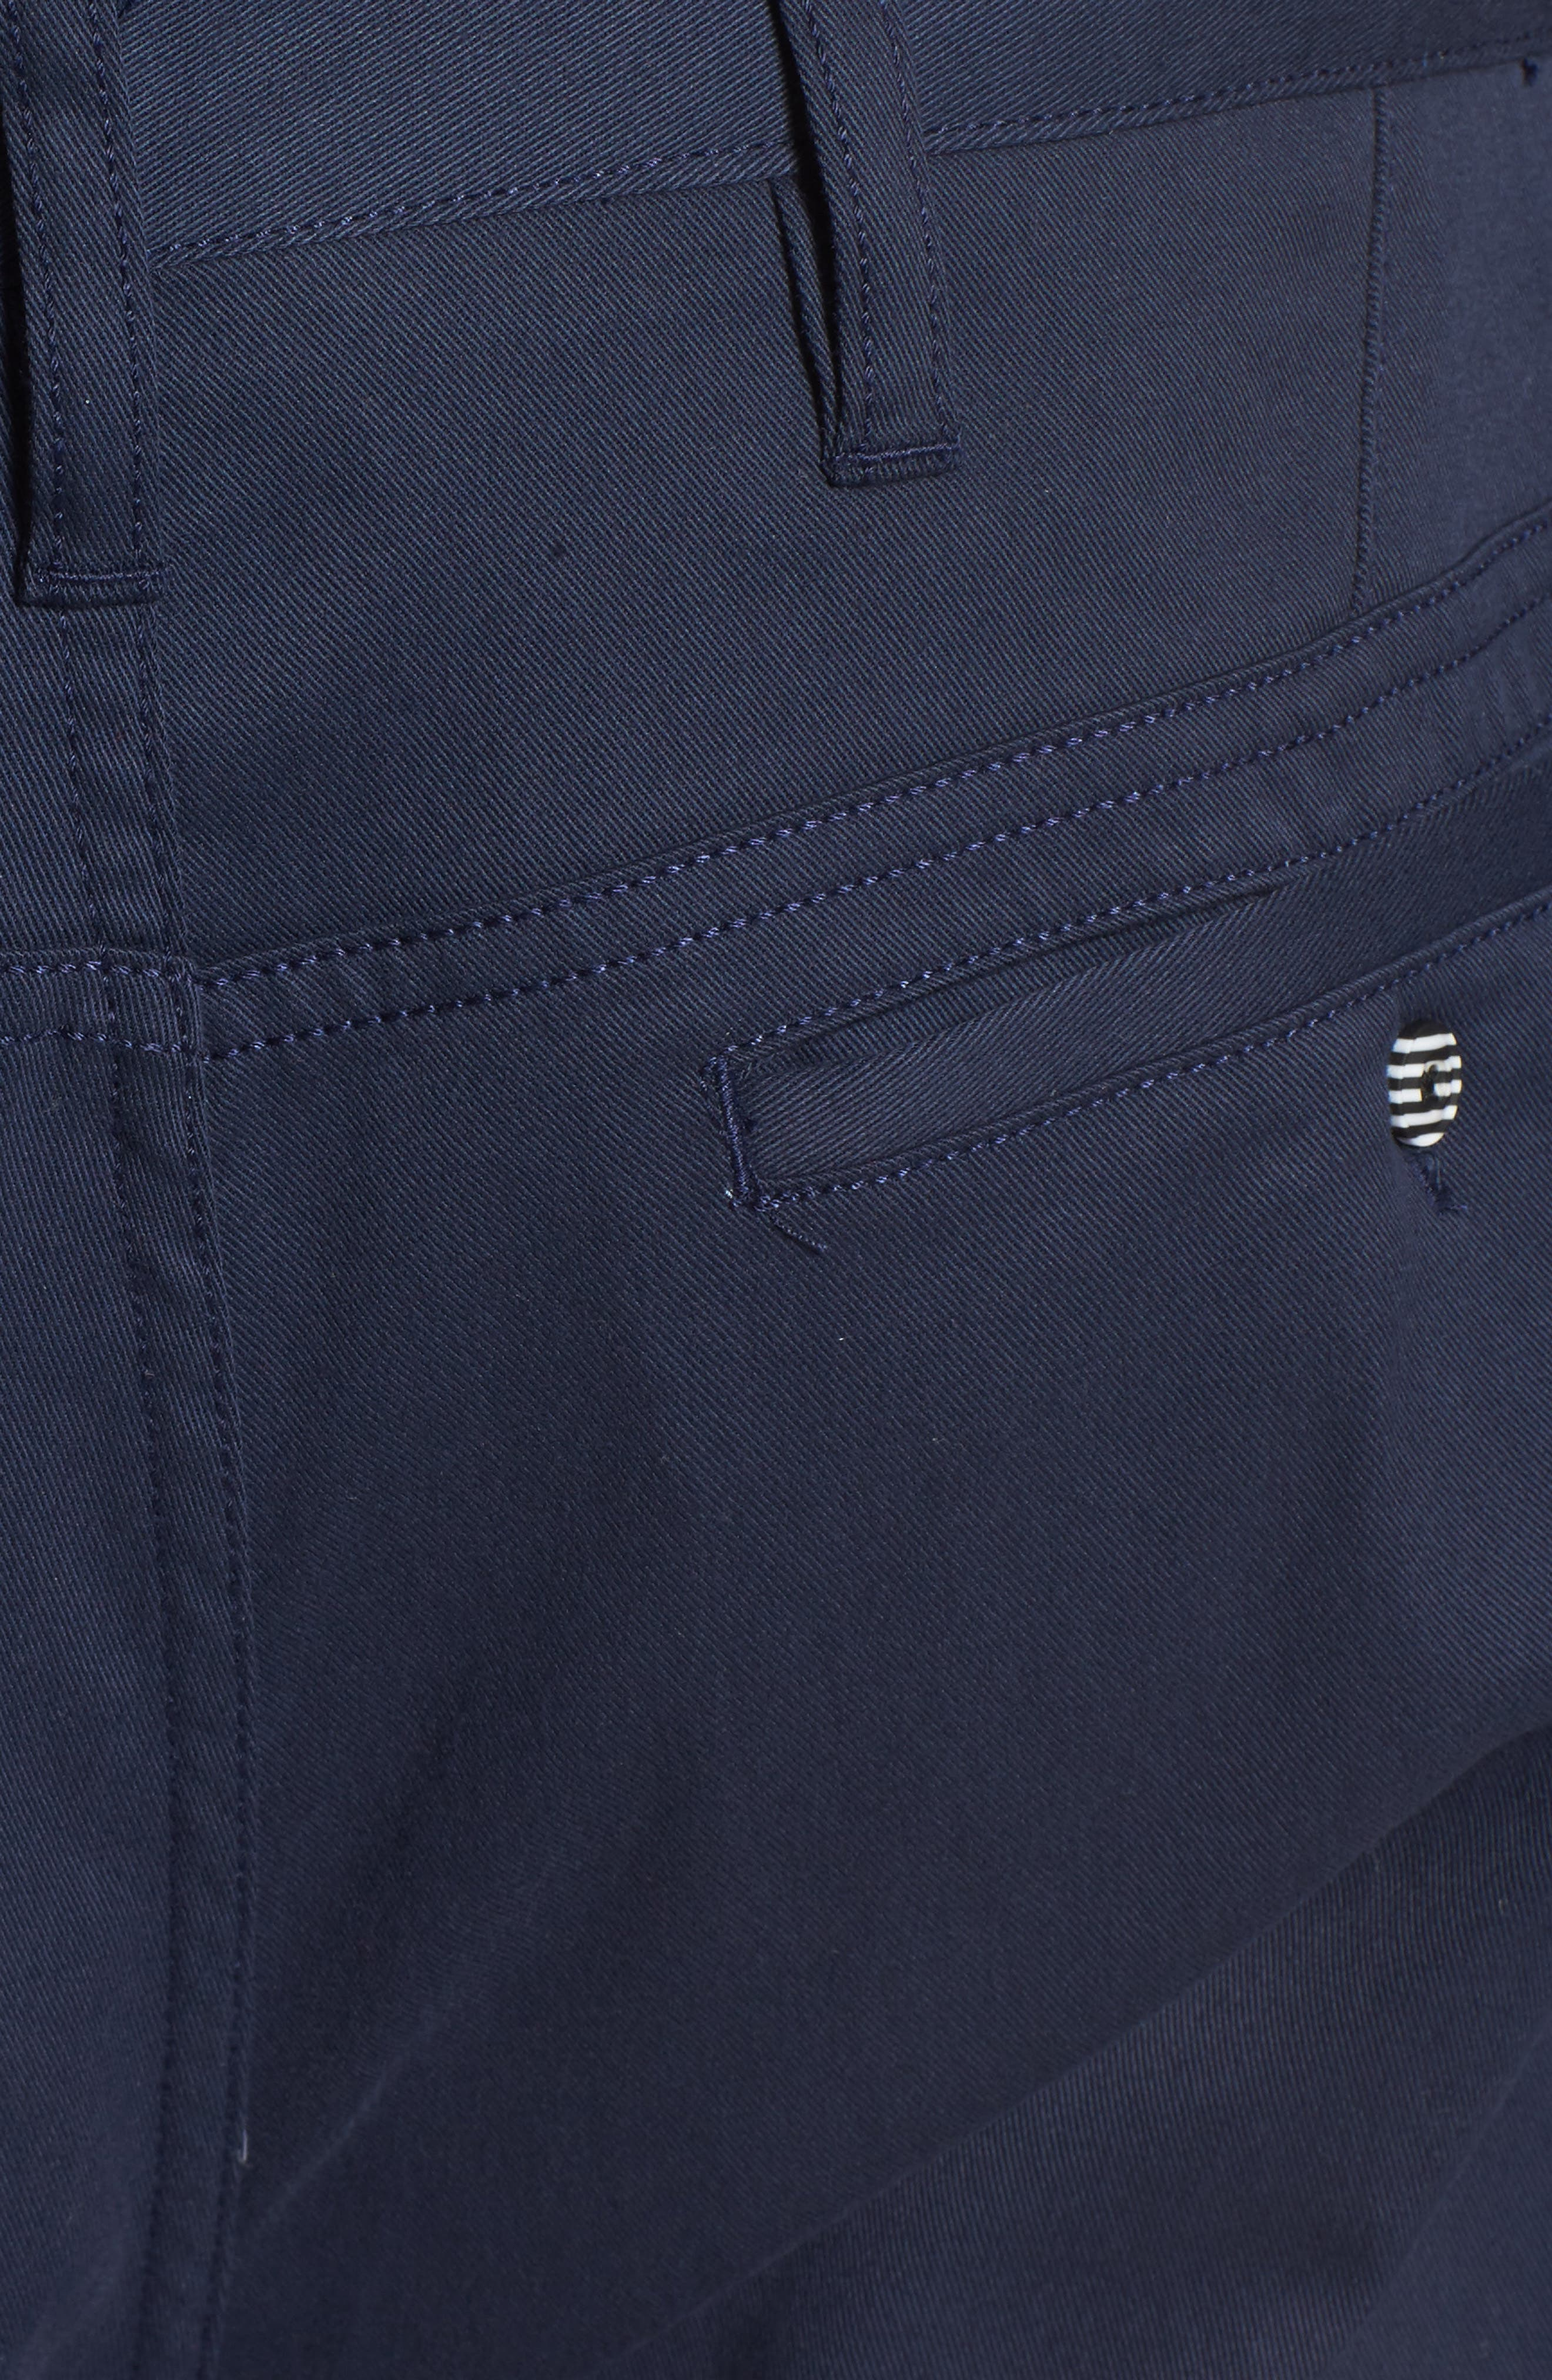 Dri-FIT Chinos,                             Alternate thumbnail 5, color,                             OBSIDIAN